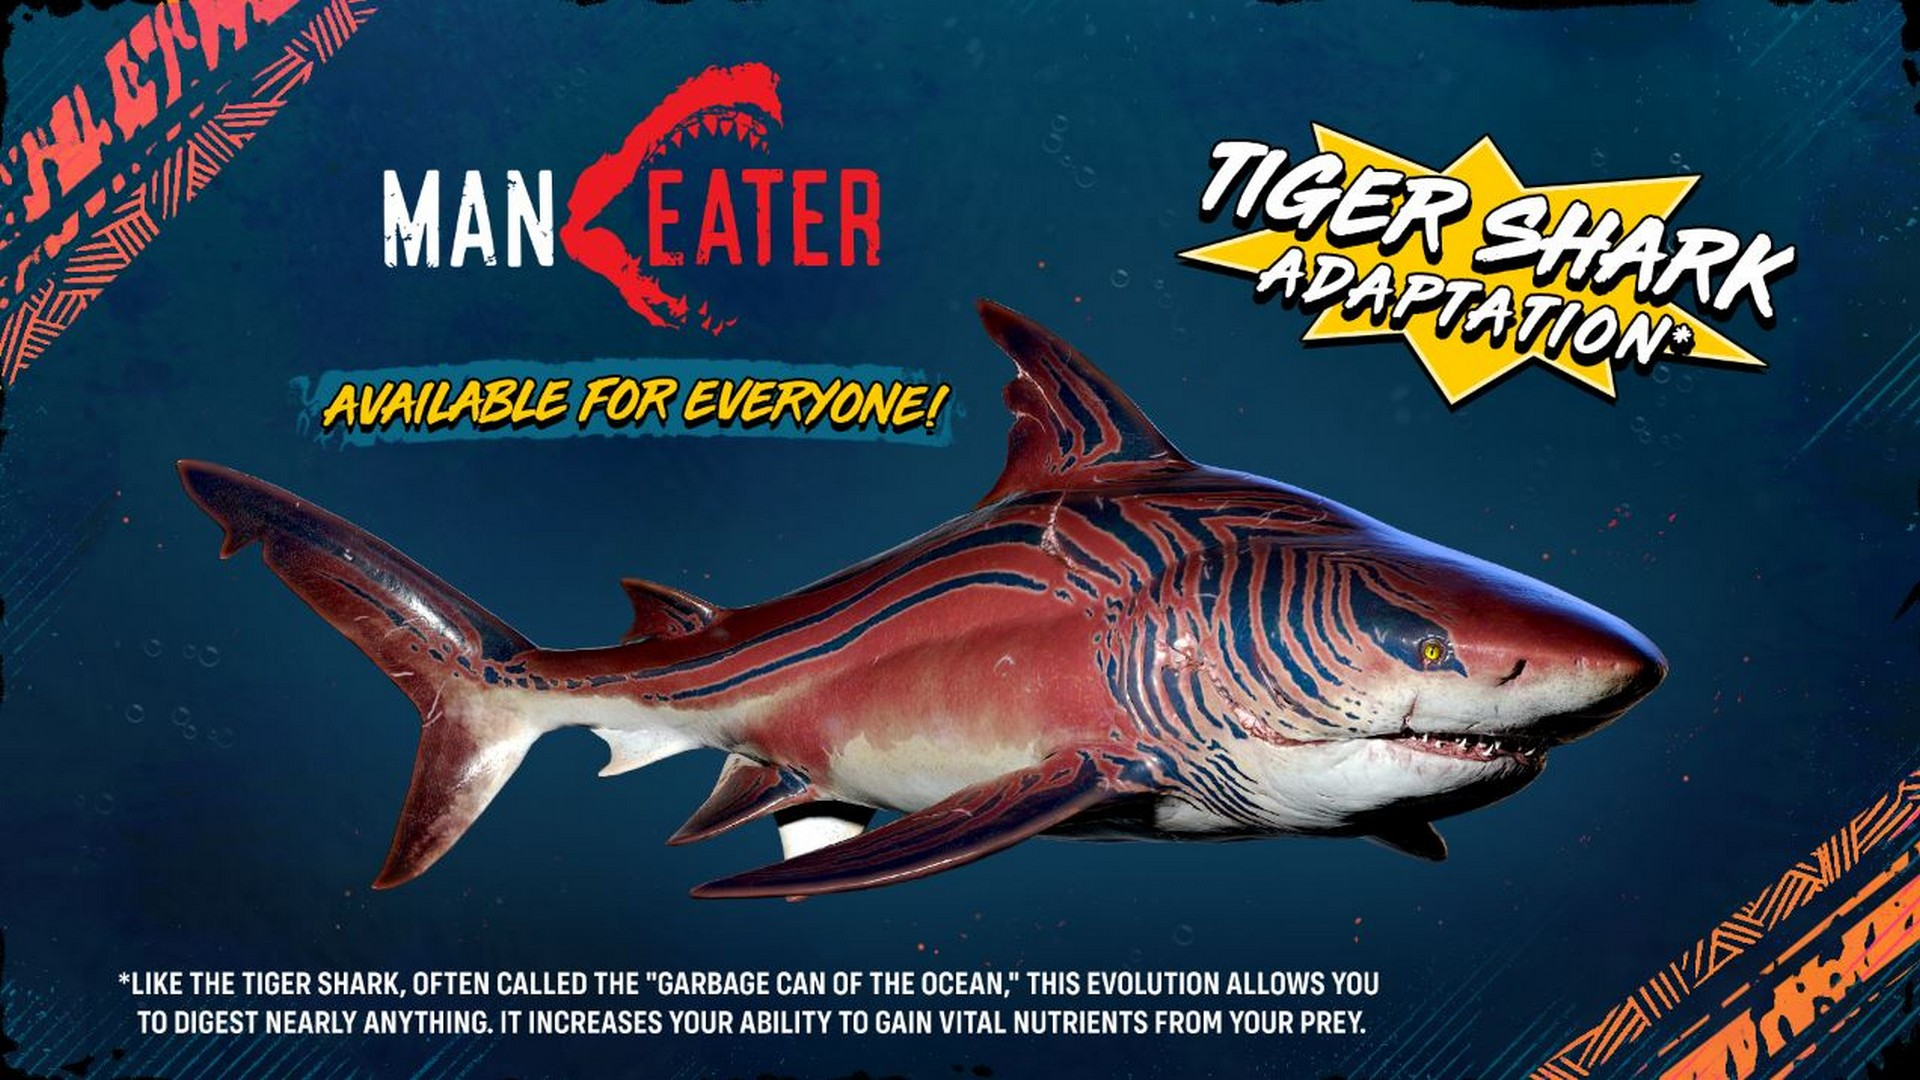 Take A Bite Out Of Shark Week! All Maneater Players Receive Tiger Shark Adaptation For Free Today